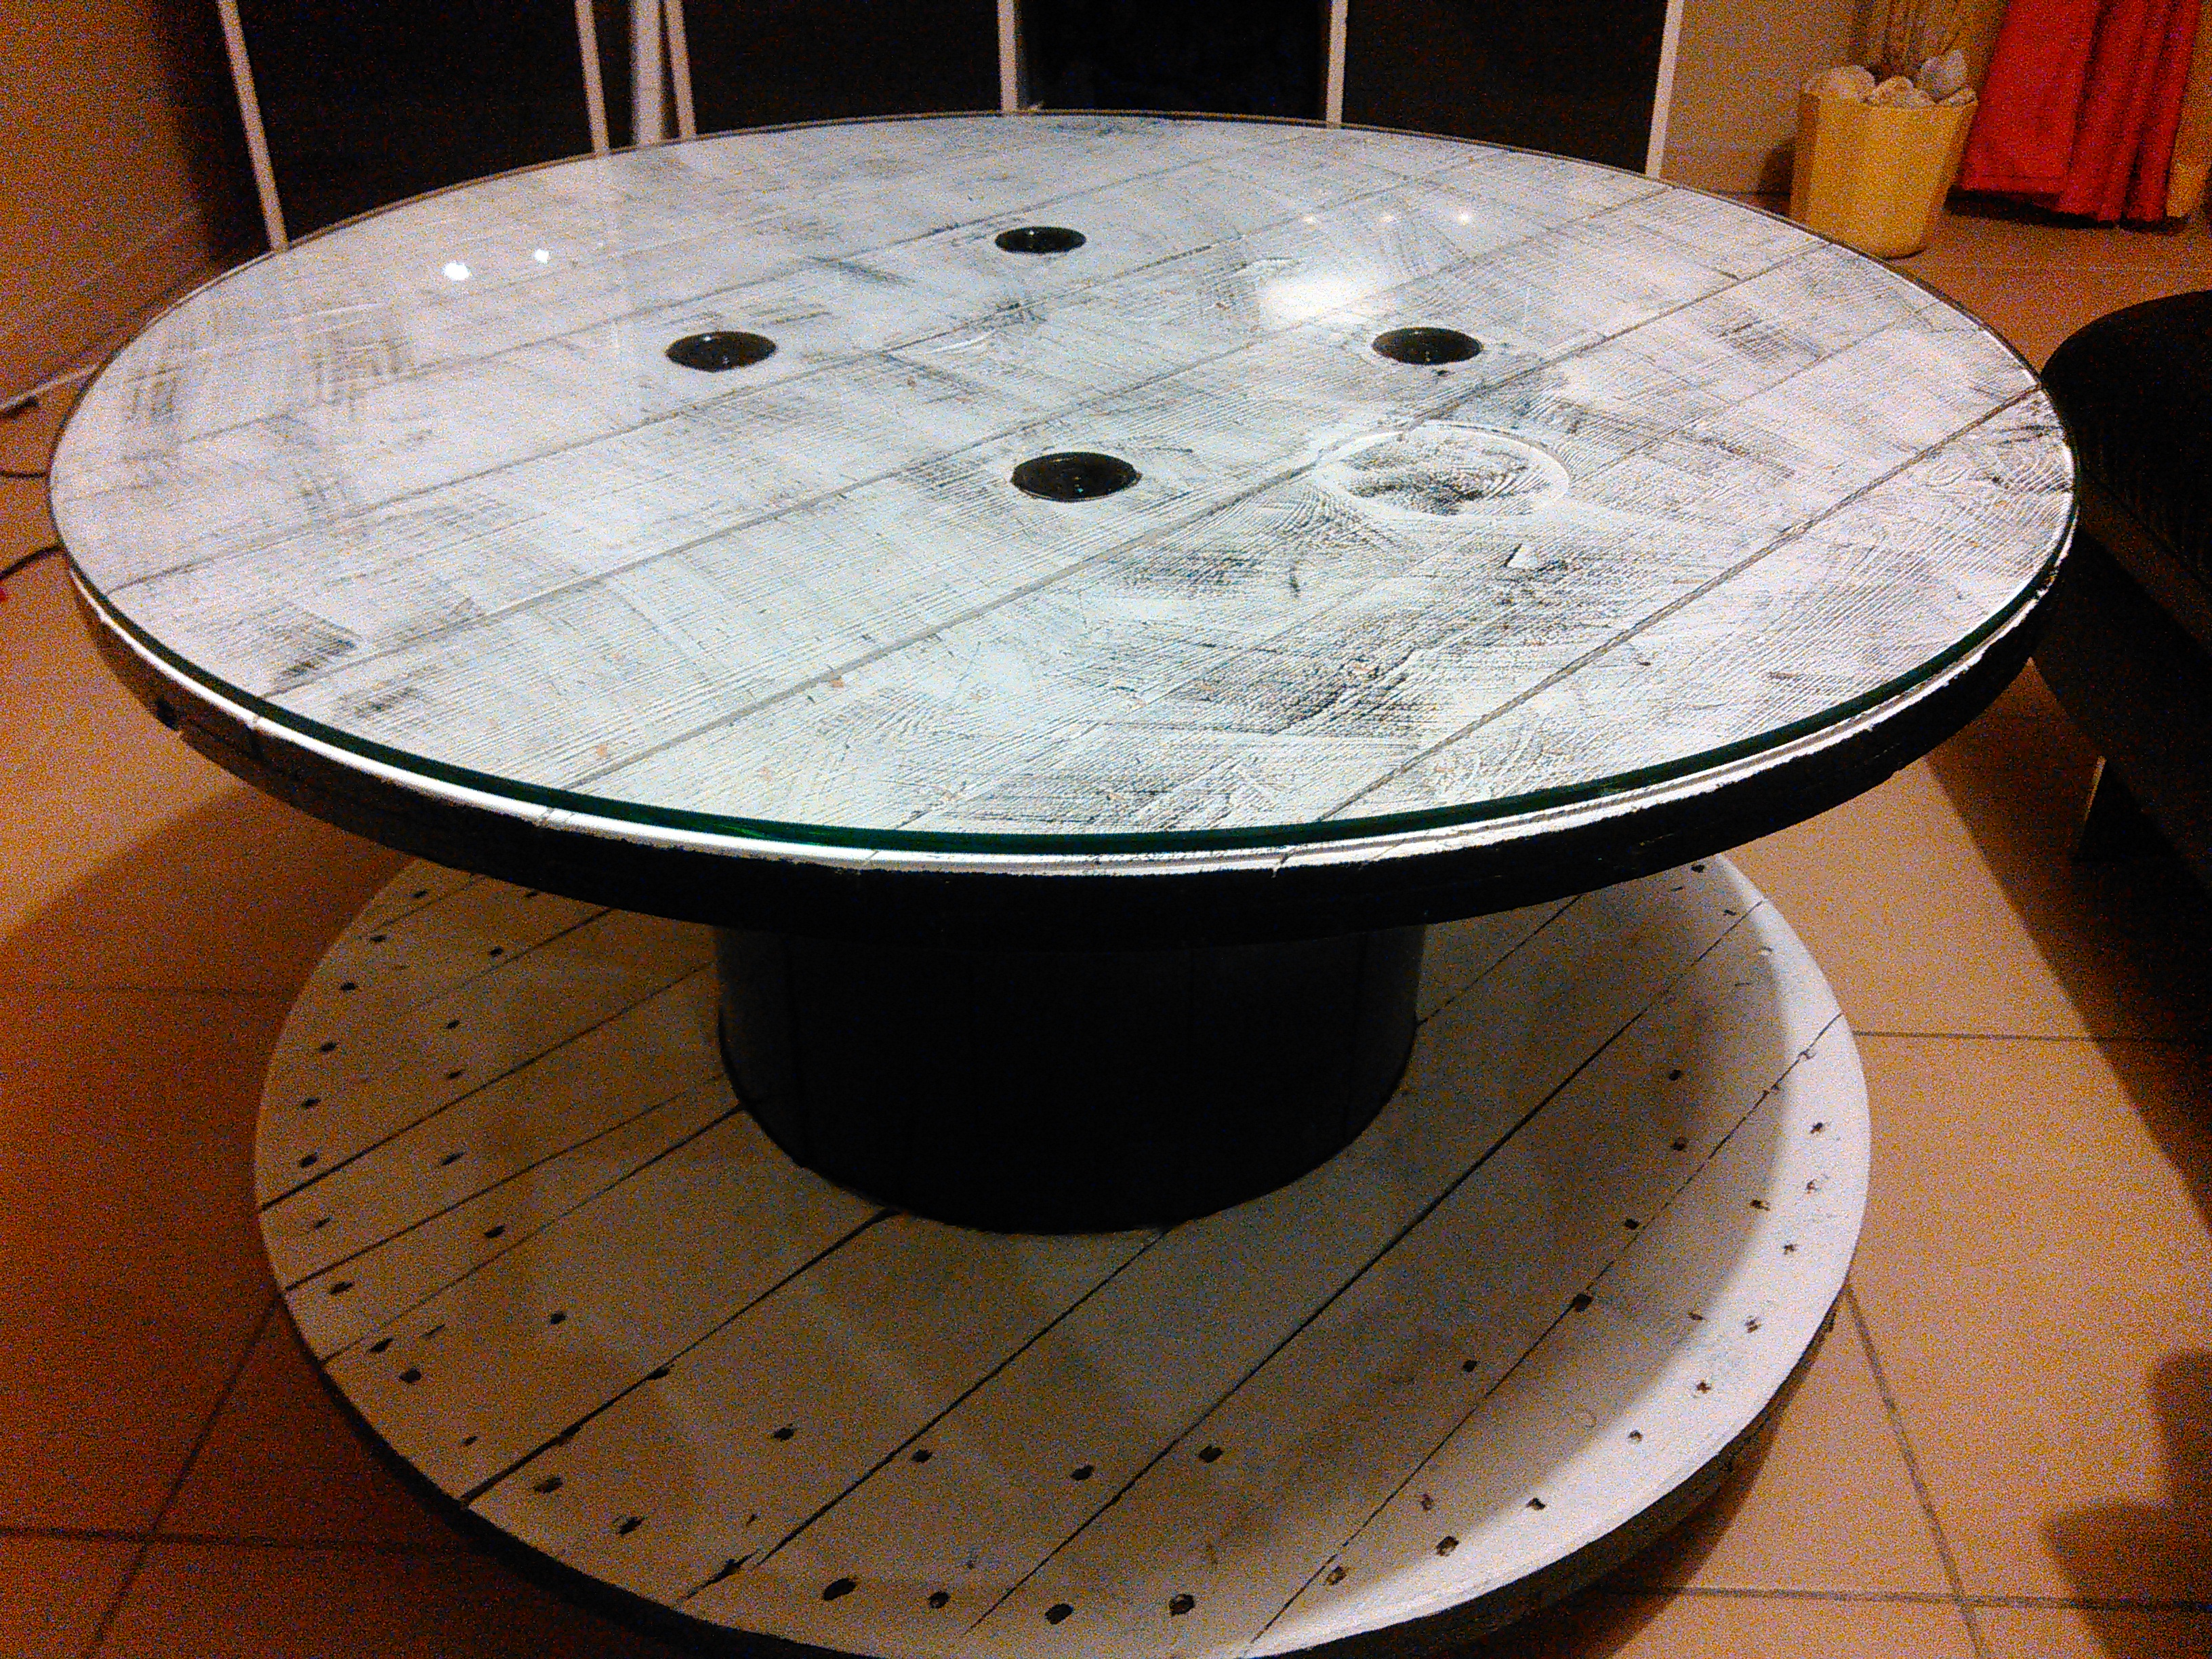 Retaper Une Table Basse Comment Customiser Un Touret En Table Basse By Sebricole